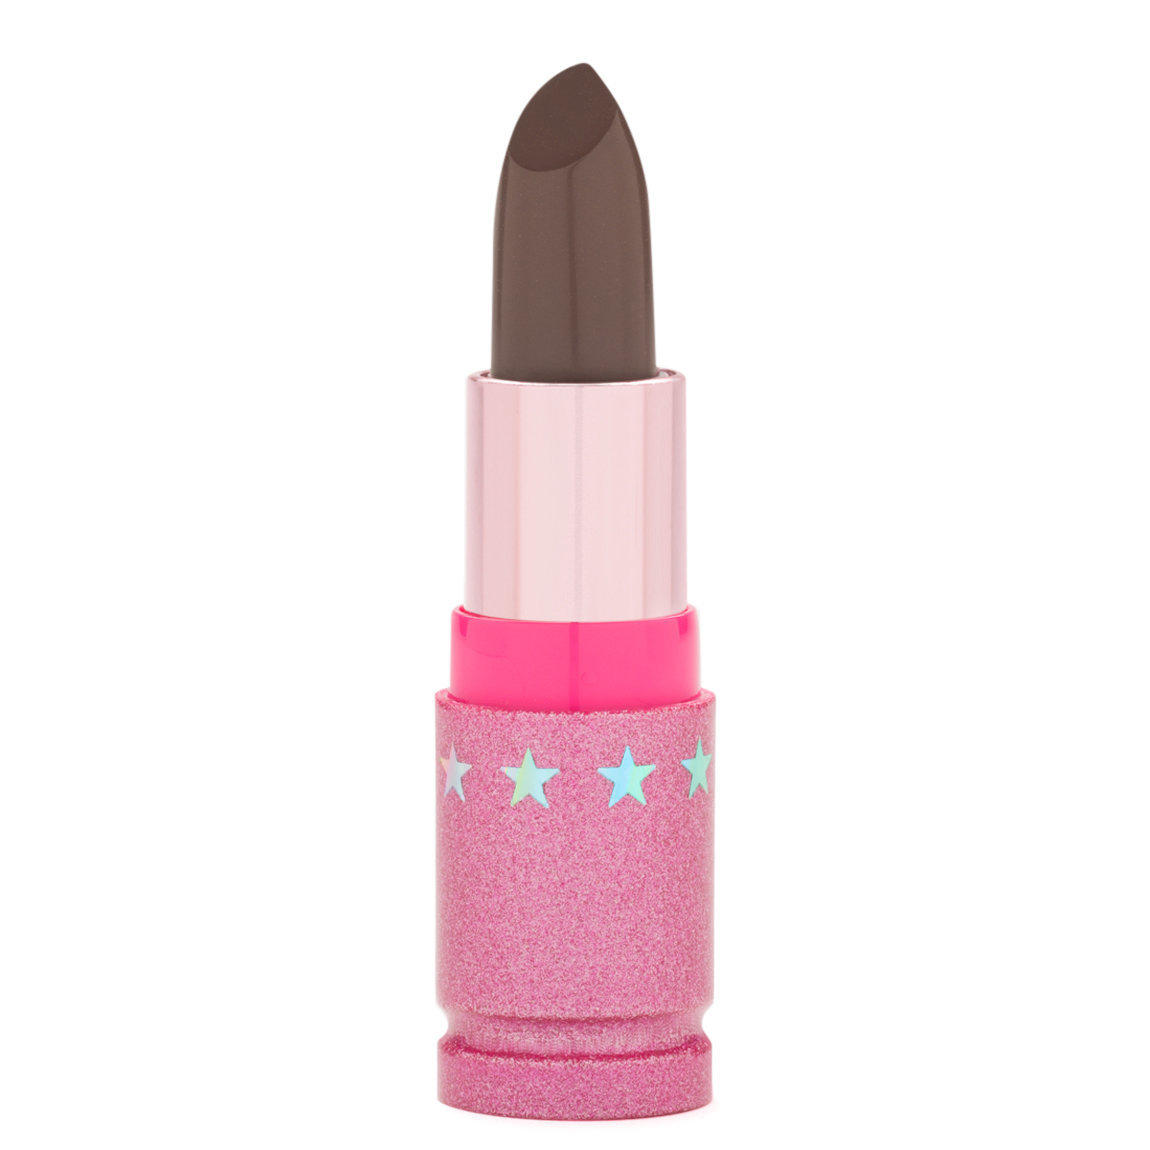 Jeffree Star Lip Ammunition Lipstick Gargoyle